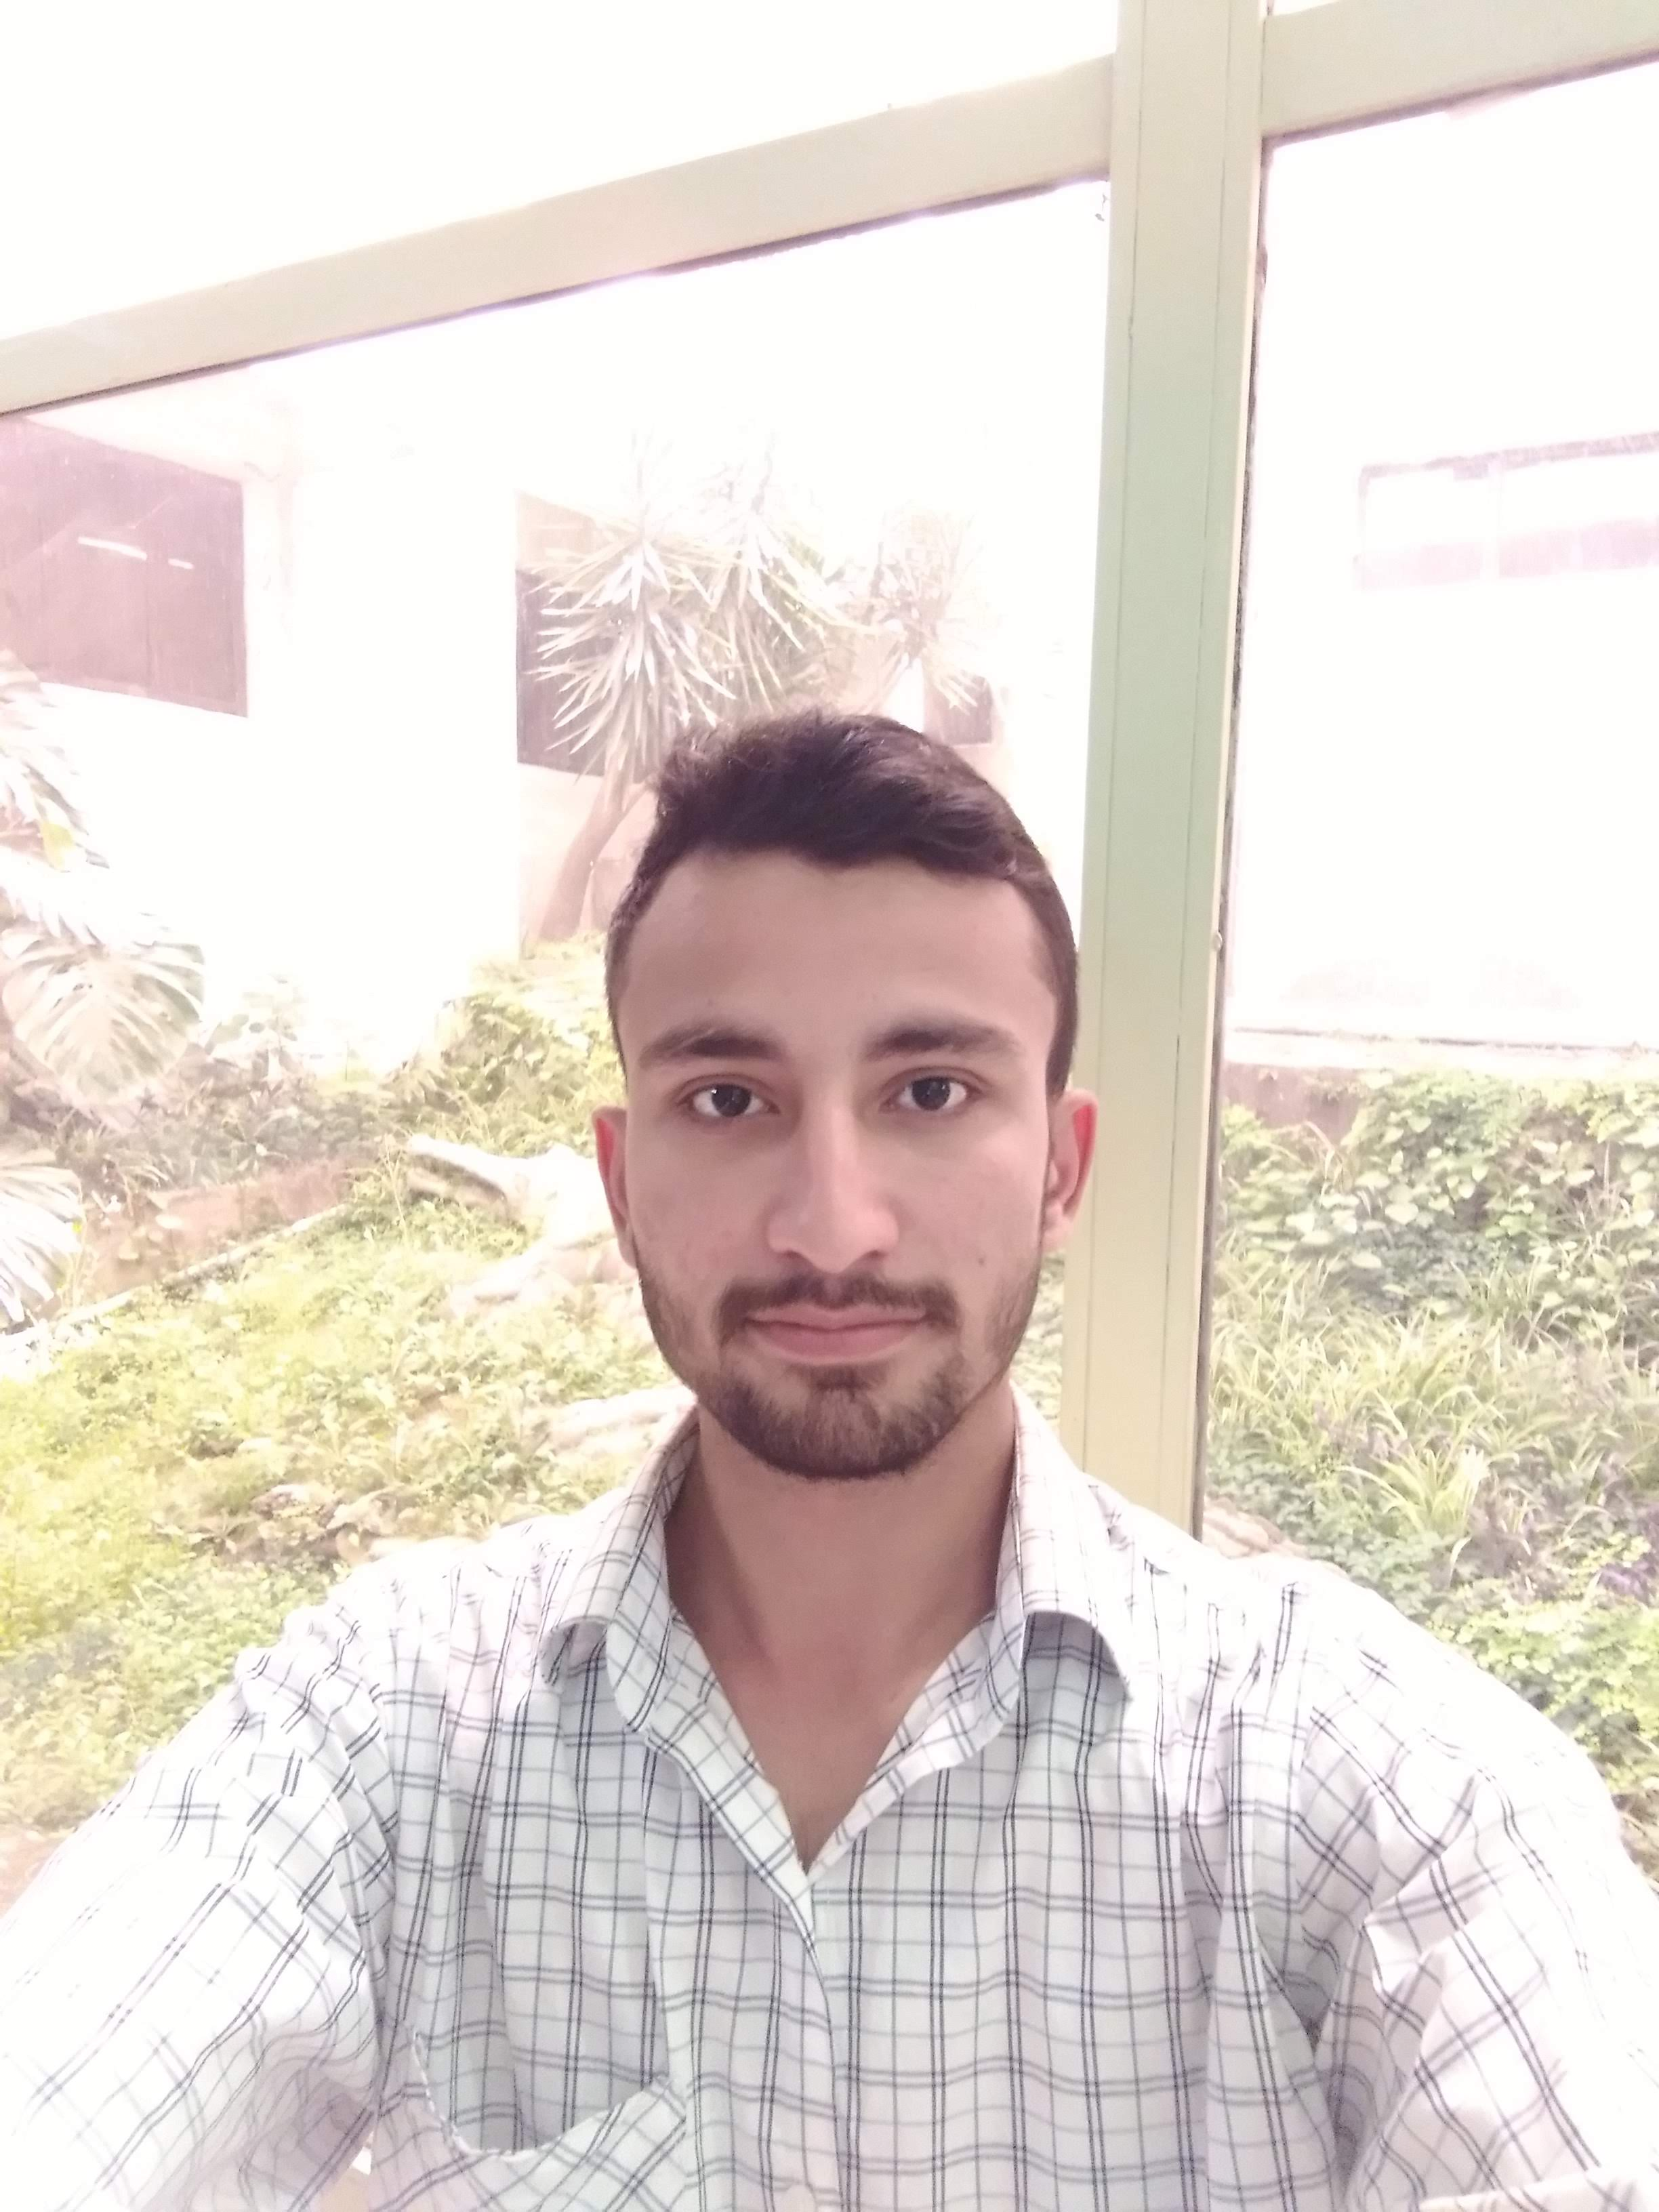 Mohsin Nisar Data Entry, Excel, Technical Support, Virtual Assistant, Web Search, Electronics, PCB Design And Layout, Marketing, Sales, Editing